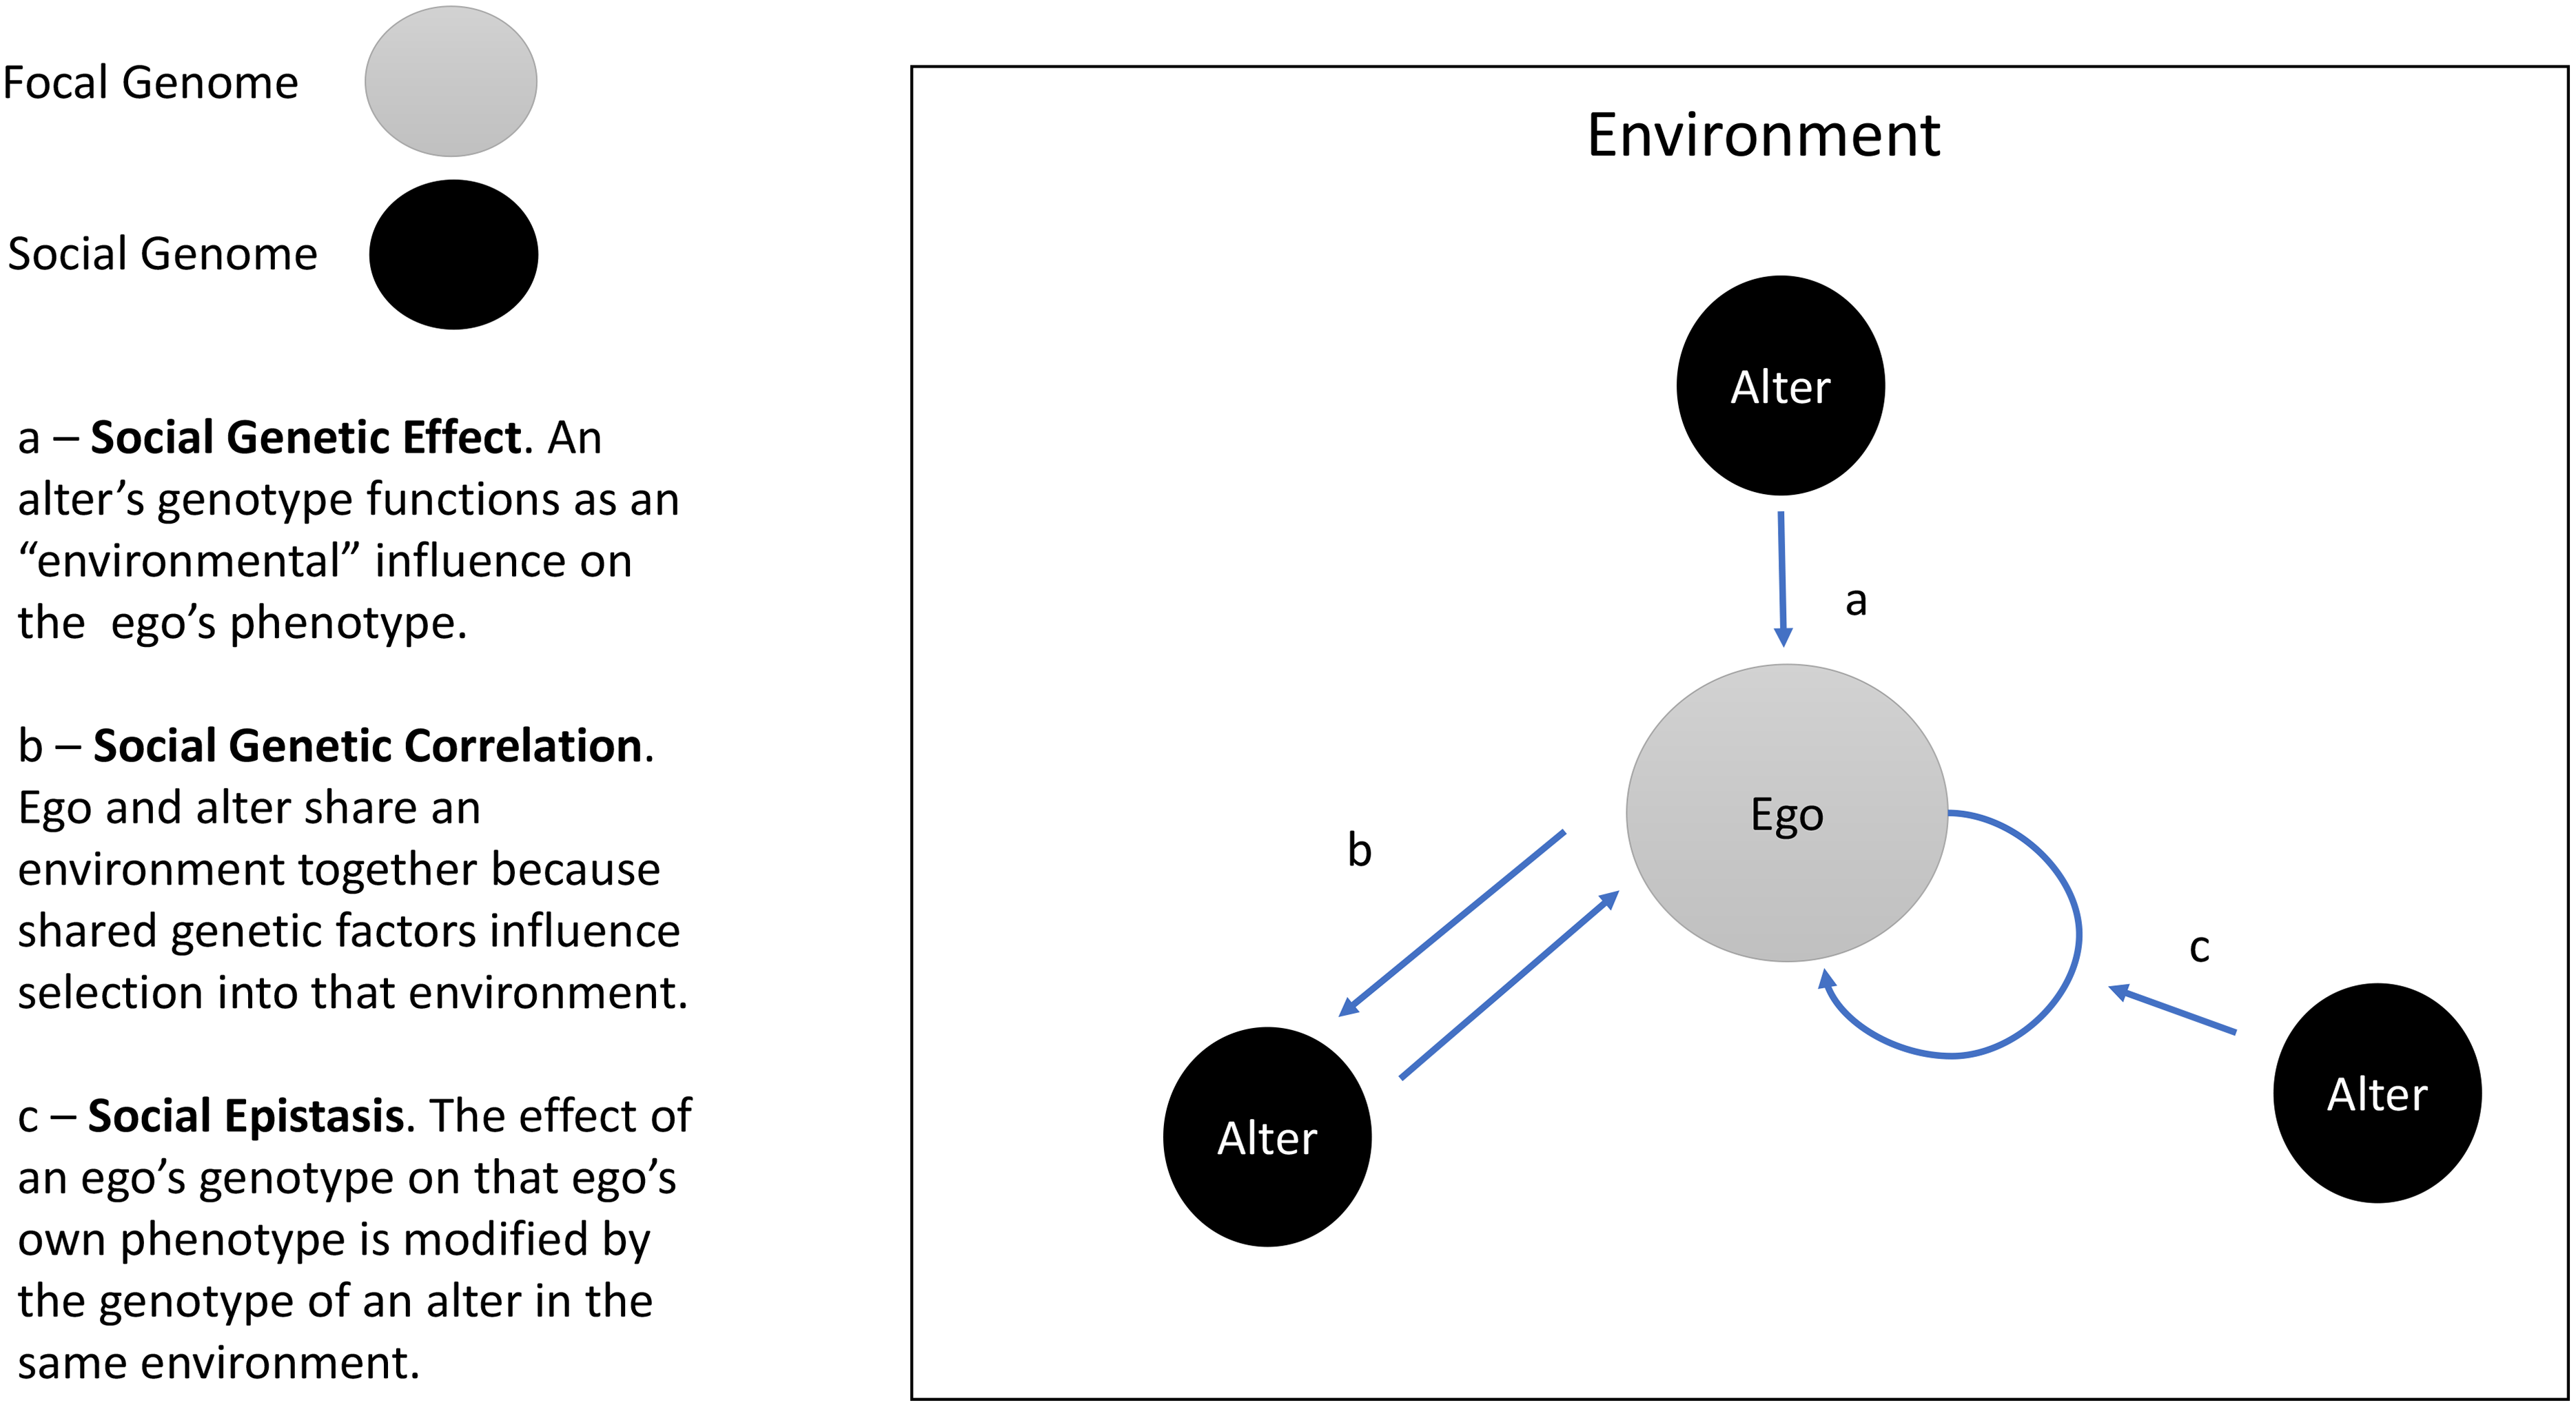 Social Genetic Effects (SGEs), social genetic correlation, and social epistasis.